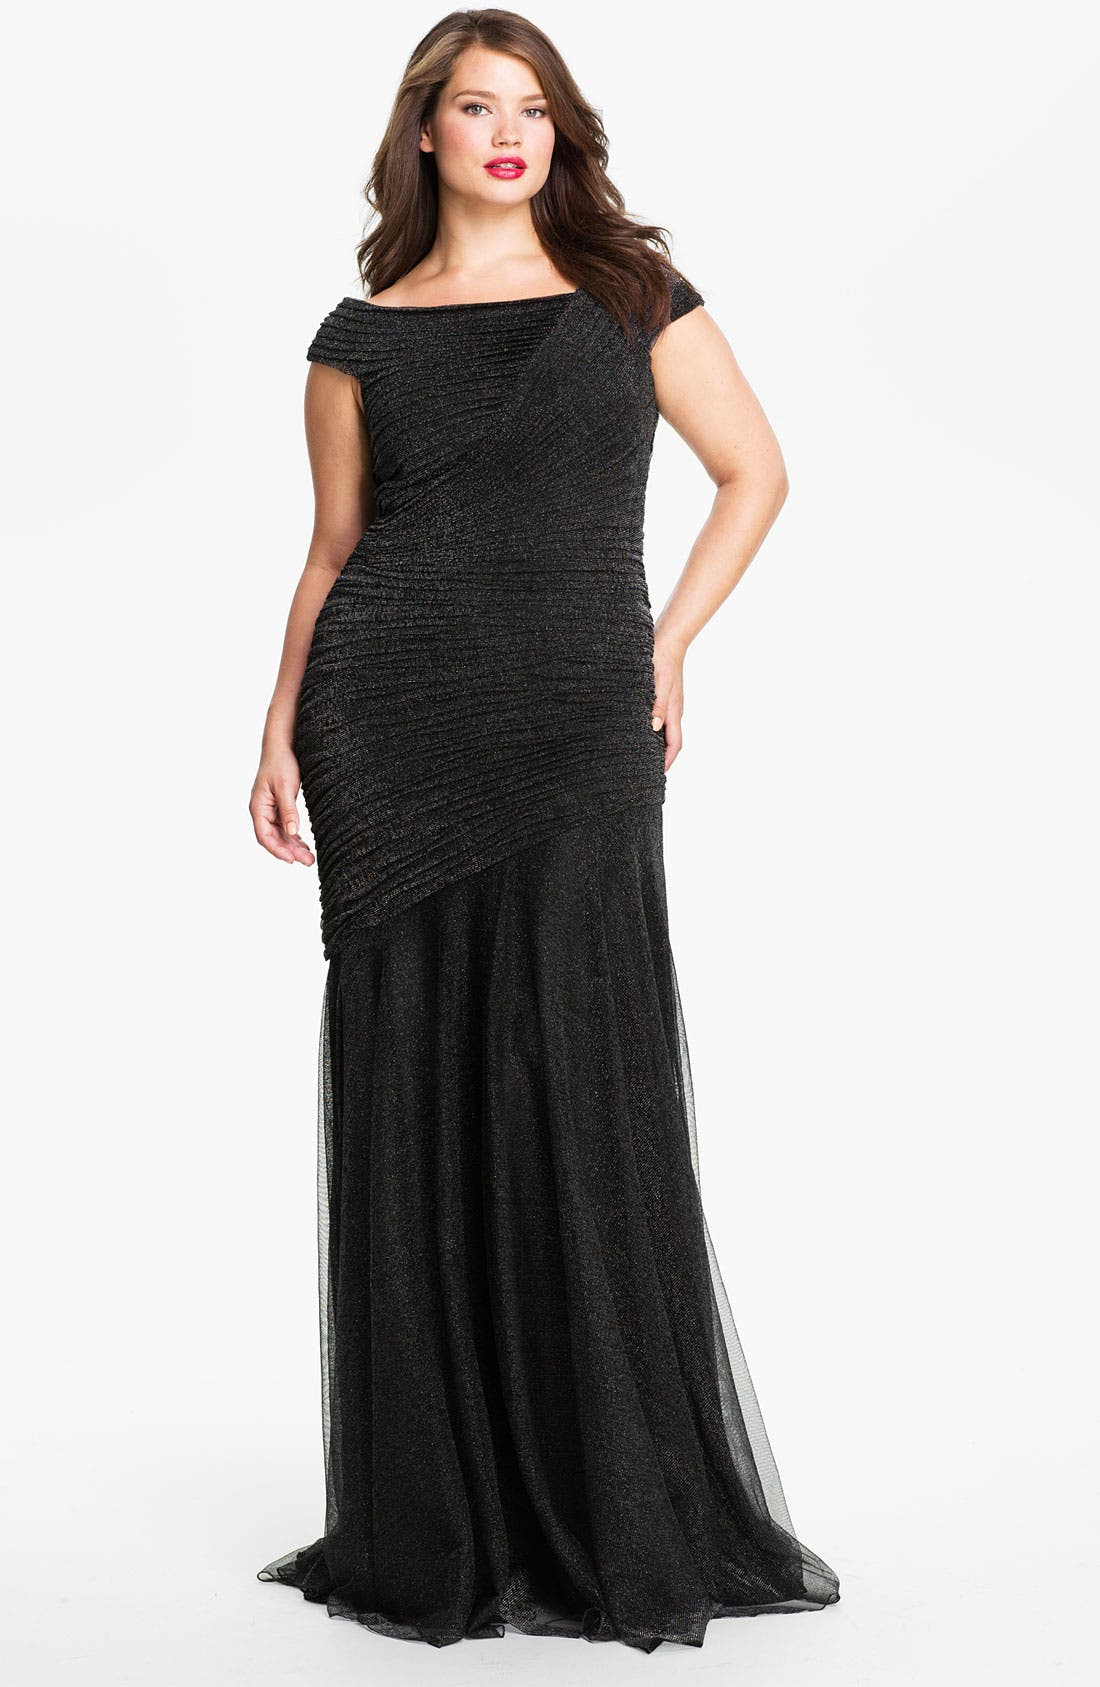 Alternate Image 1 Selected - Tadashi Shoji Ruched Metallic Gown (Plus Size)